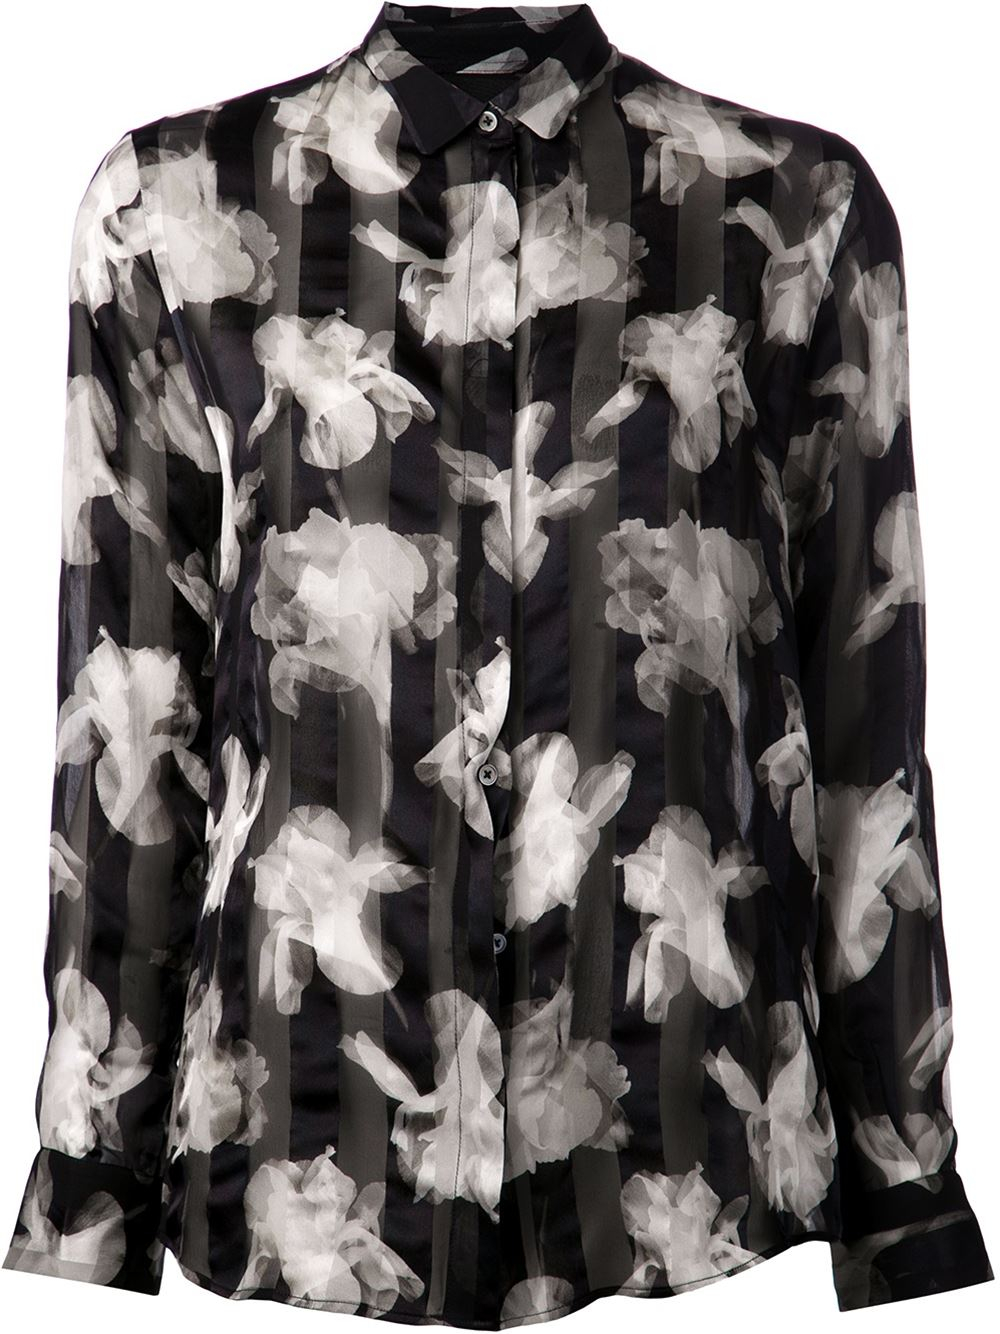 Paul smith black label Floral Blouse in Black | Lyst